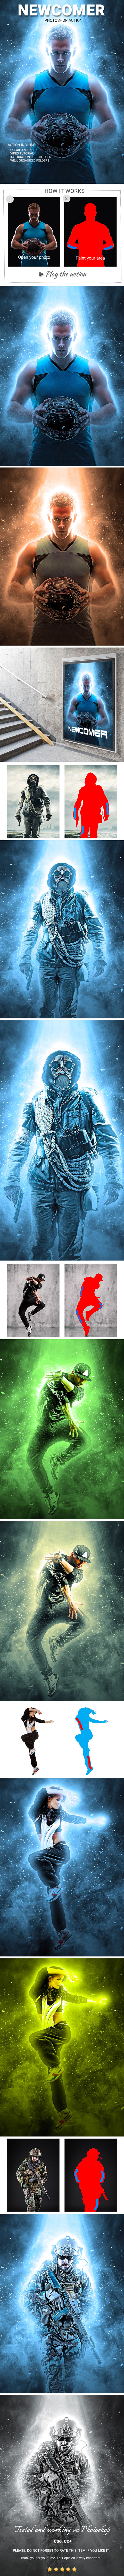 Newcomer Photoshop Action - Photo Effects Actions